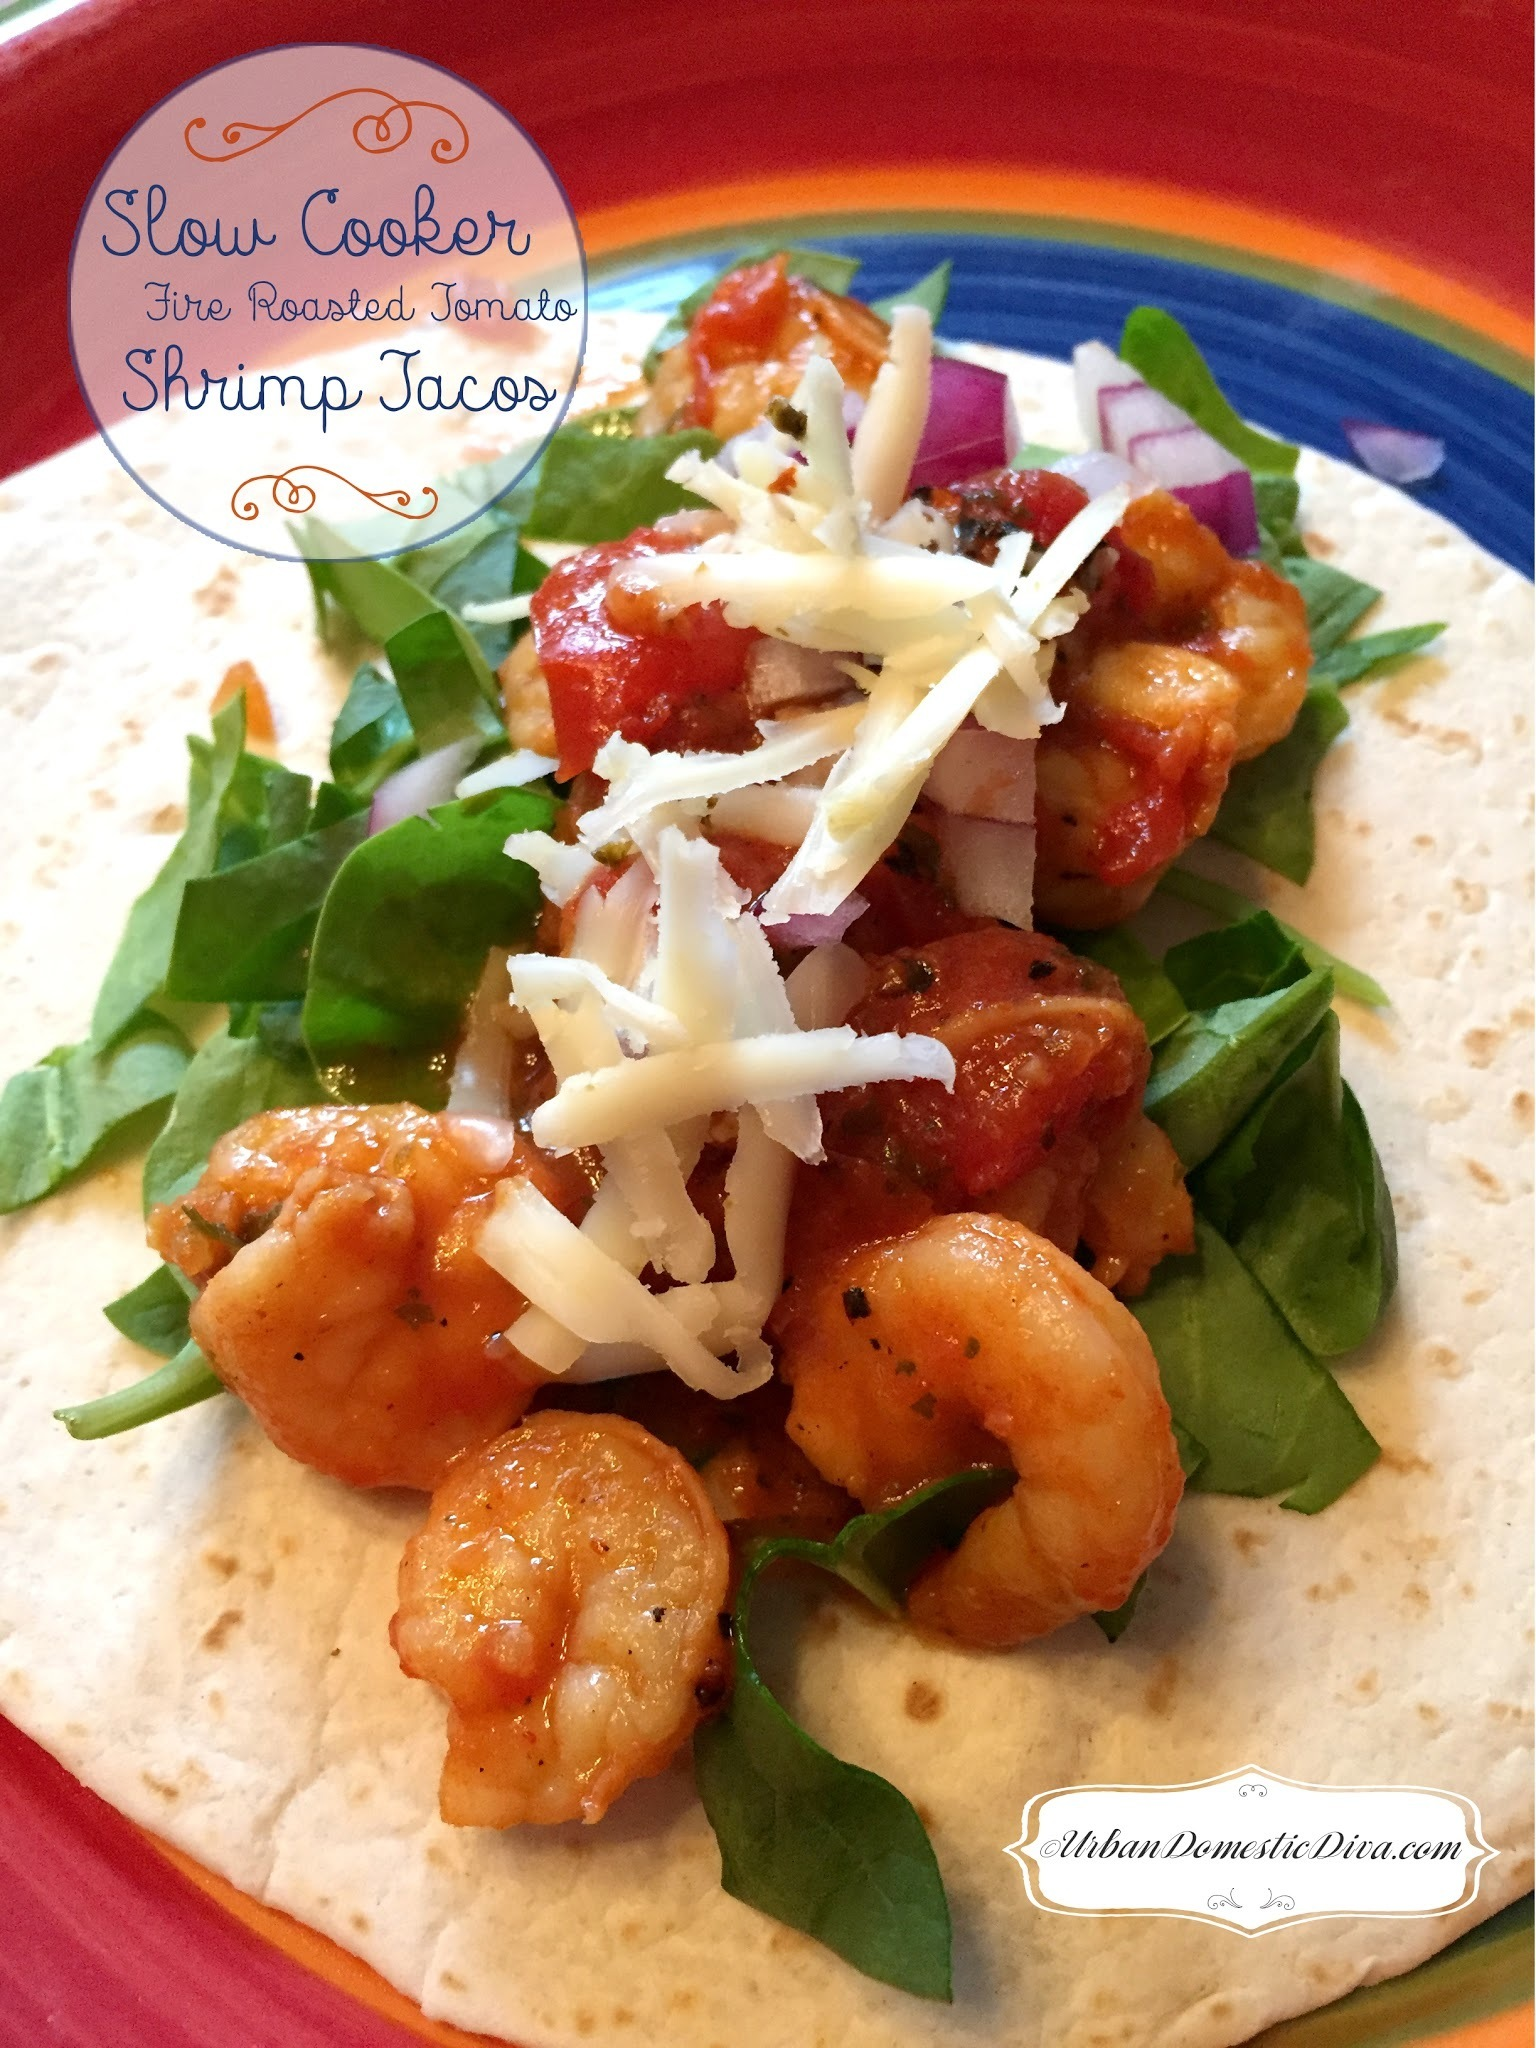 RECIPE: Slow Cooker Fire Roasted Tomato & Shrimp Tacos